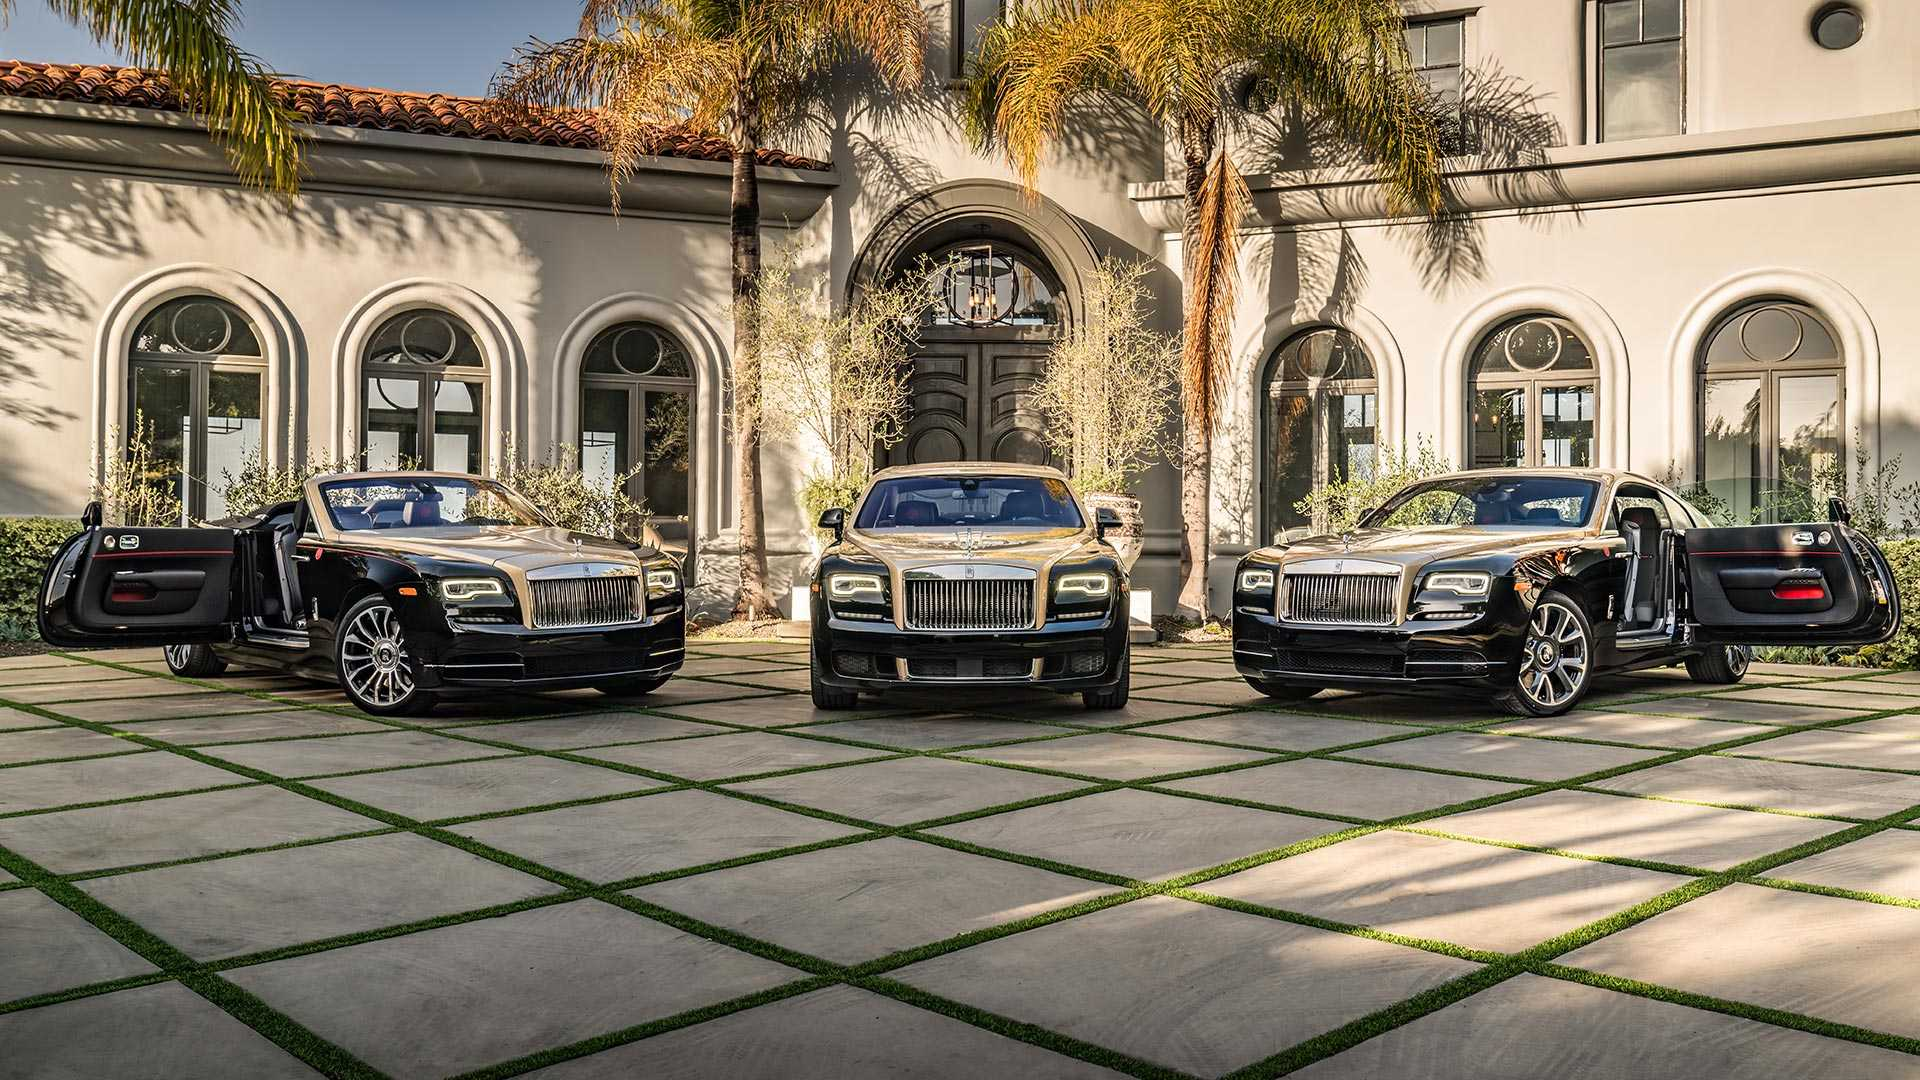 year-of-the-pig-rolls-royces (1)